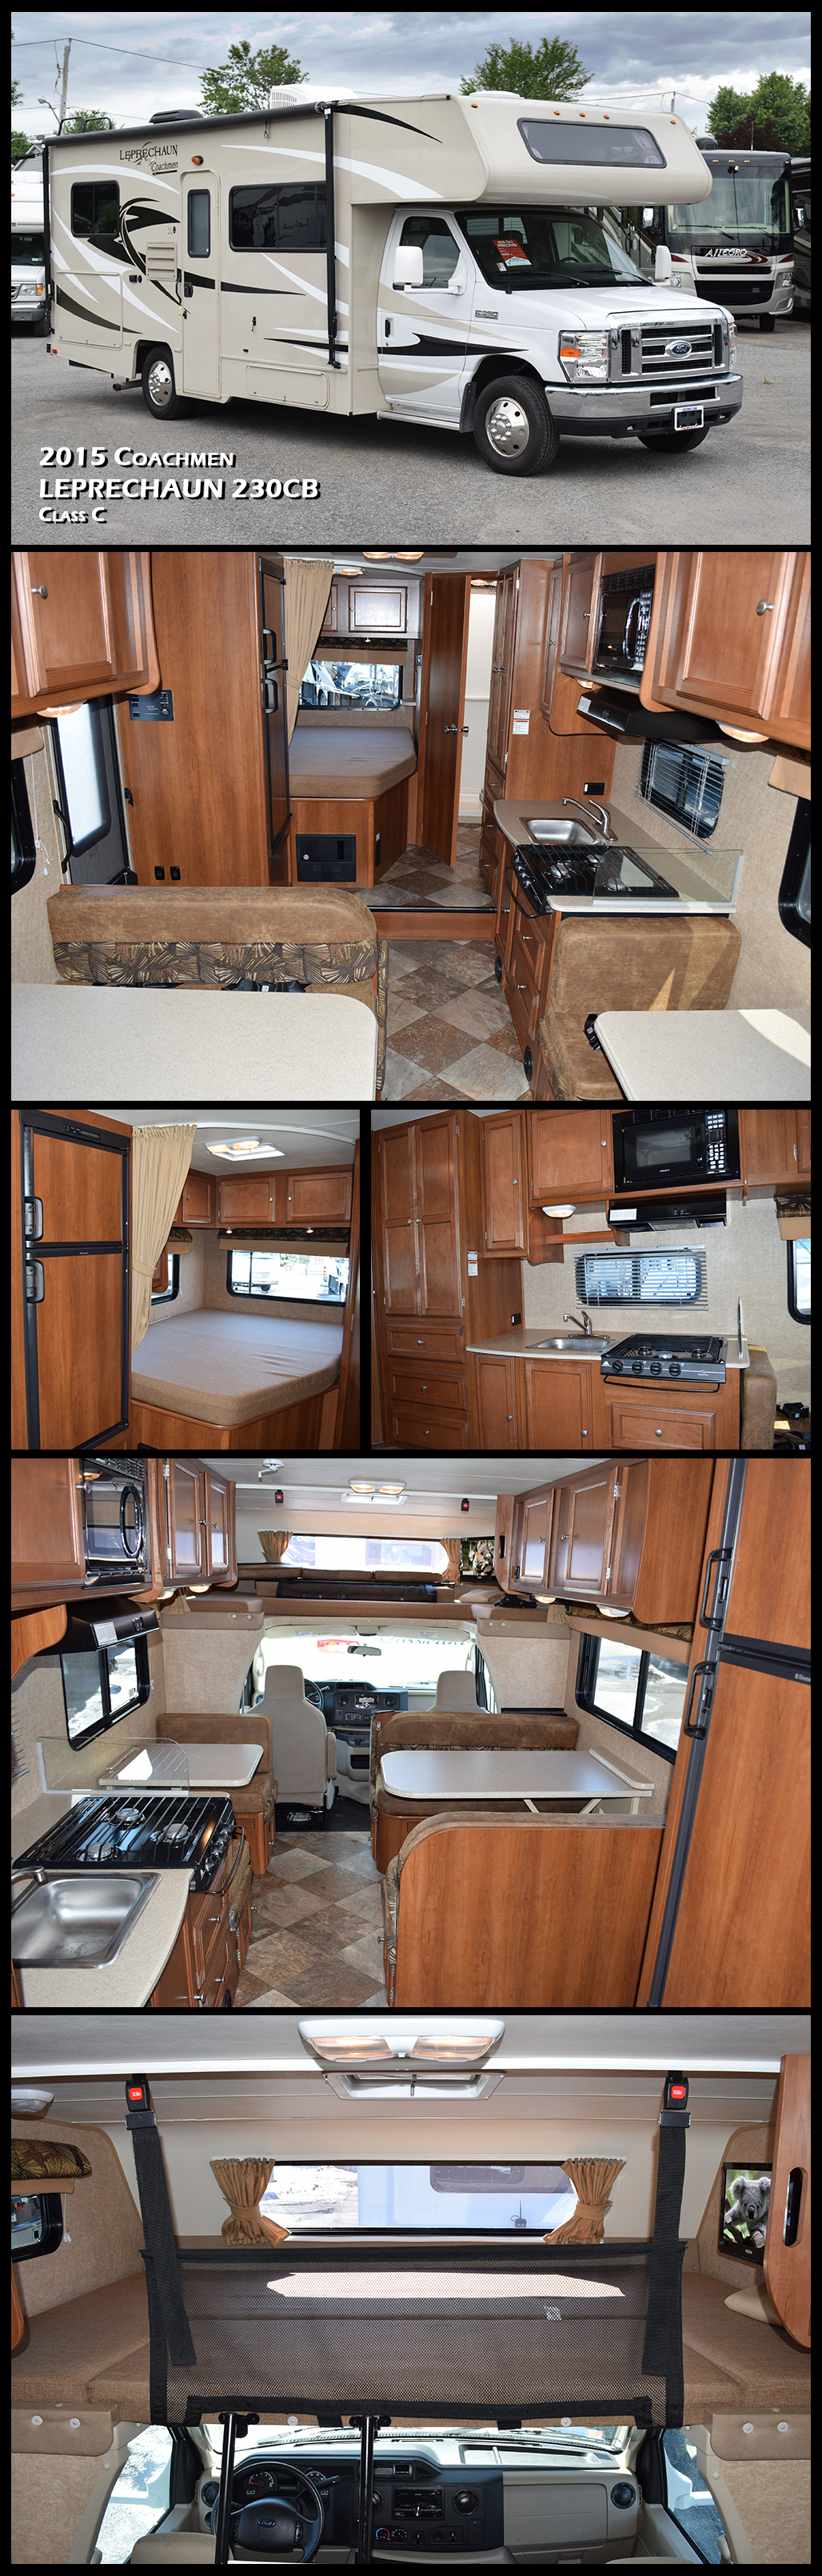 Inventory Colton Rv In Ny Buffalo Rochester And Syracuse Ny Rv Dealer Fifth Wheel Campers And Class A Motorhomes For Sale In Ny Truck Campers For Sale Motorhome Motorhomes For Sale